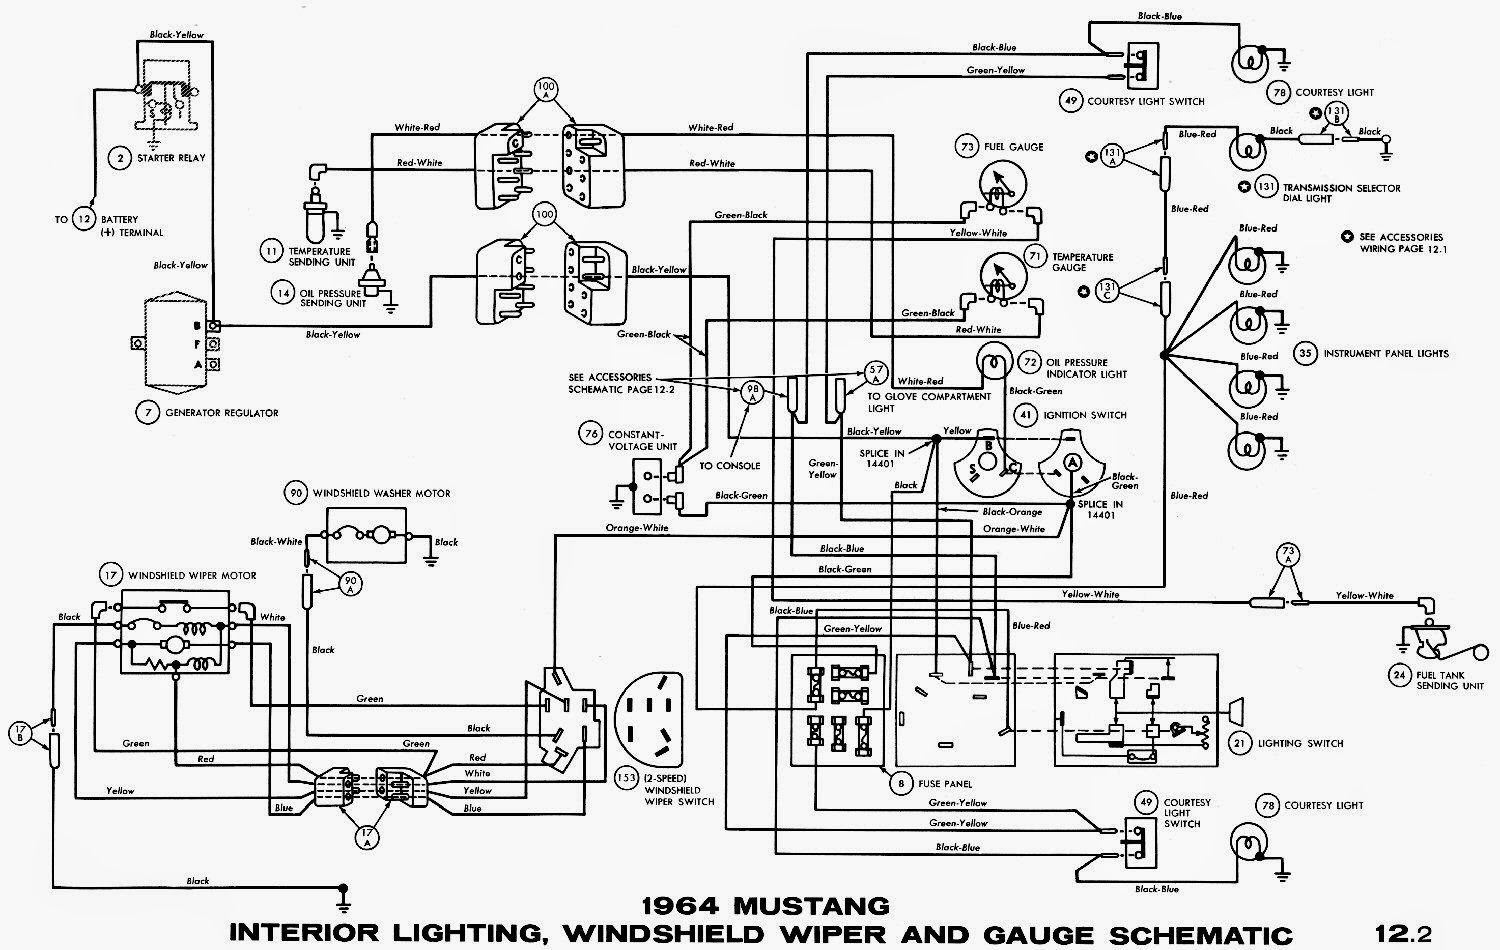 1965 mustang tail lights wiring diagram 1965 mustang ignition switch wiring diagram 1964 mustang wiring diagrams schematic | wiring diagrams